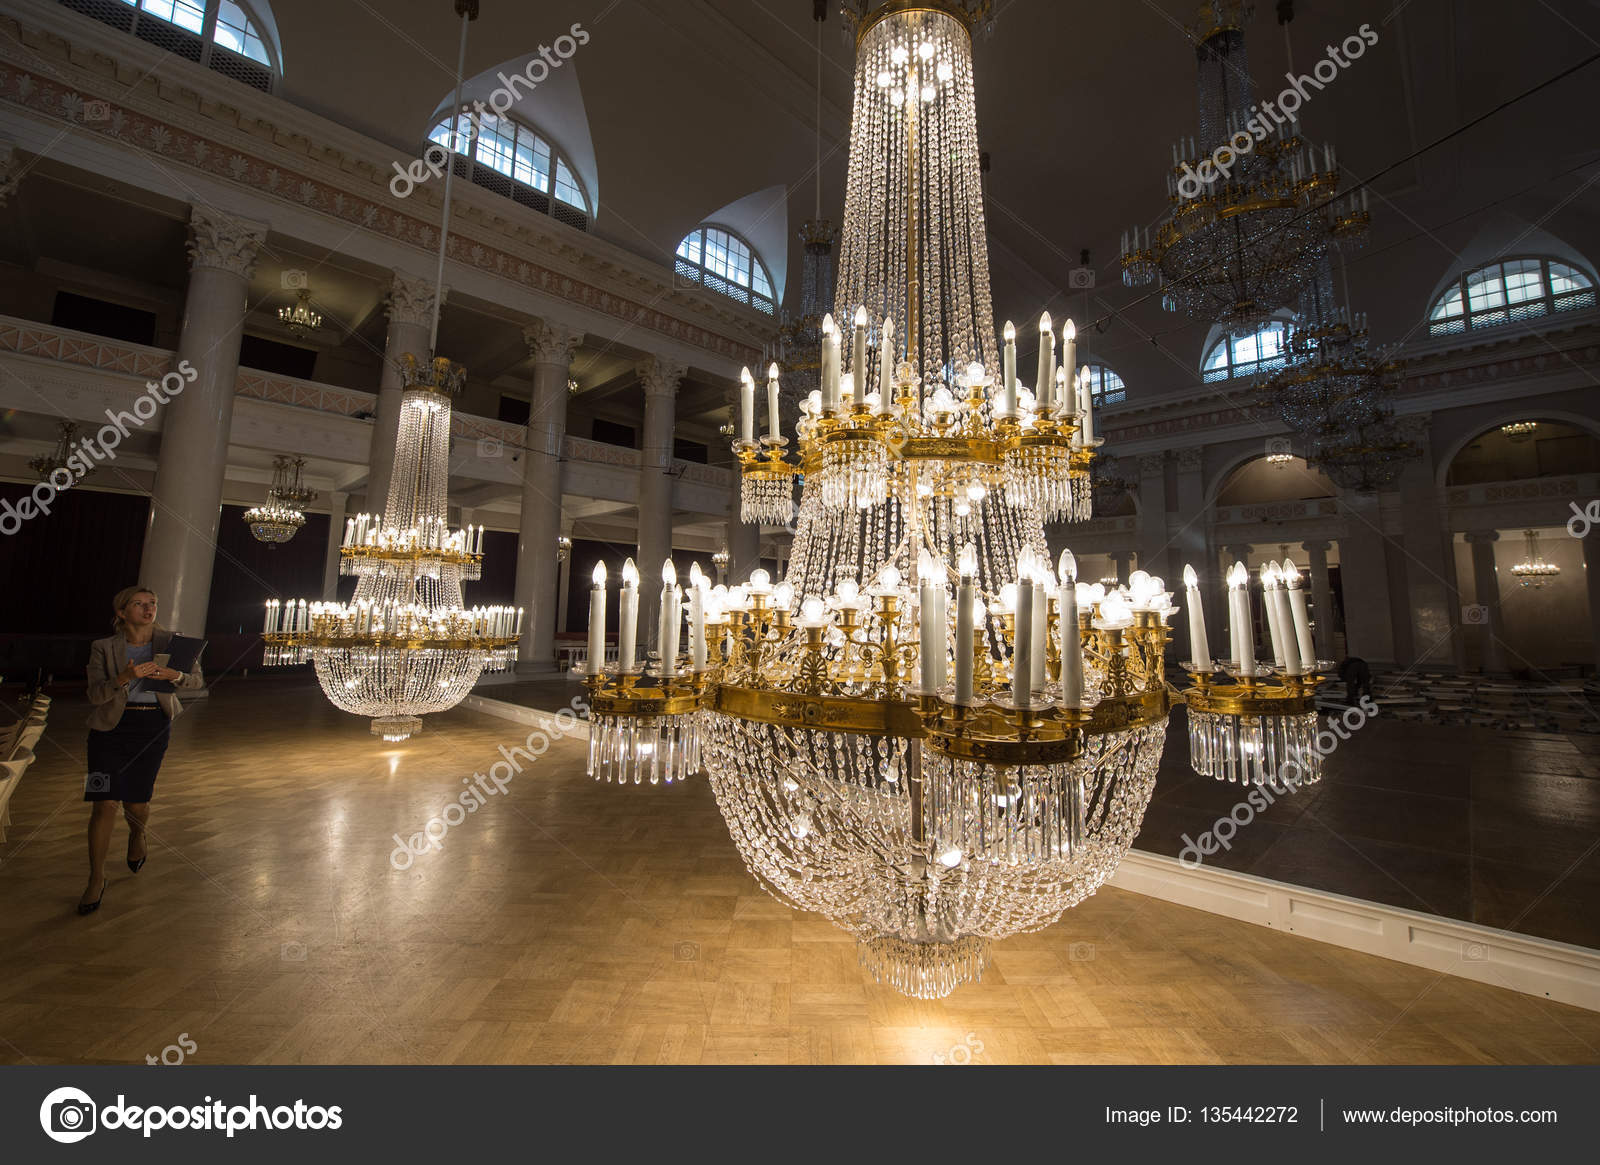 Crystal chandeliers in the st petersburg philharmonic stock saint petersburg russia september 6 2016 huge crystal chandeliers in the large concert hall of the state philharmonic tchaikovsky lowered to the floor aloadofball Images